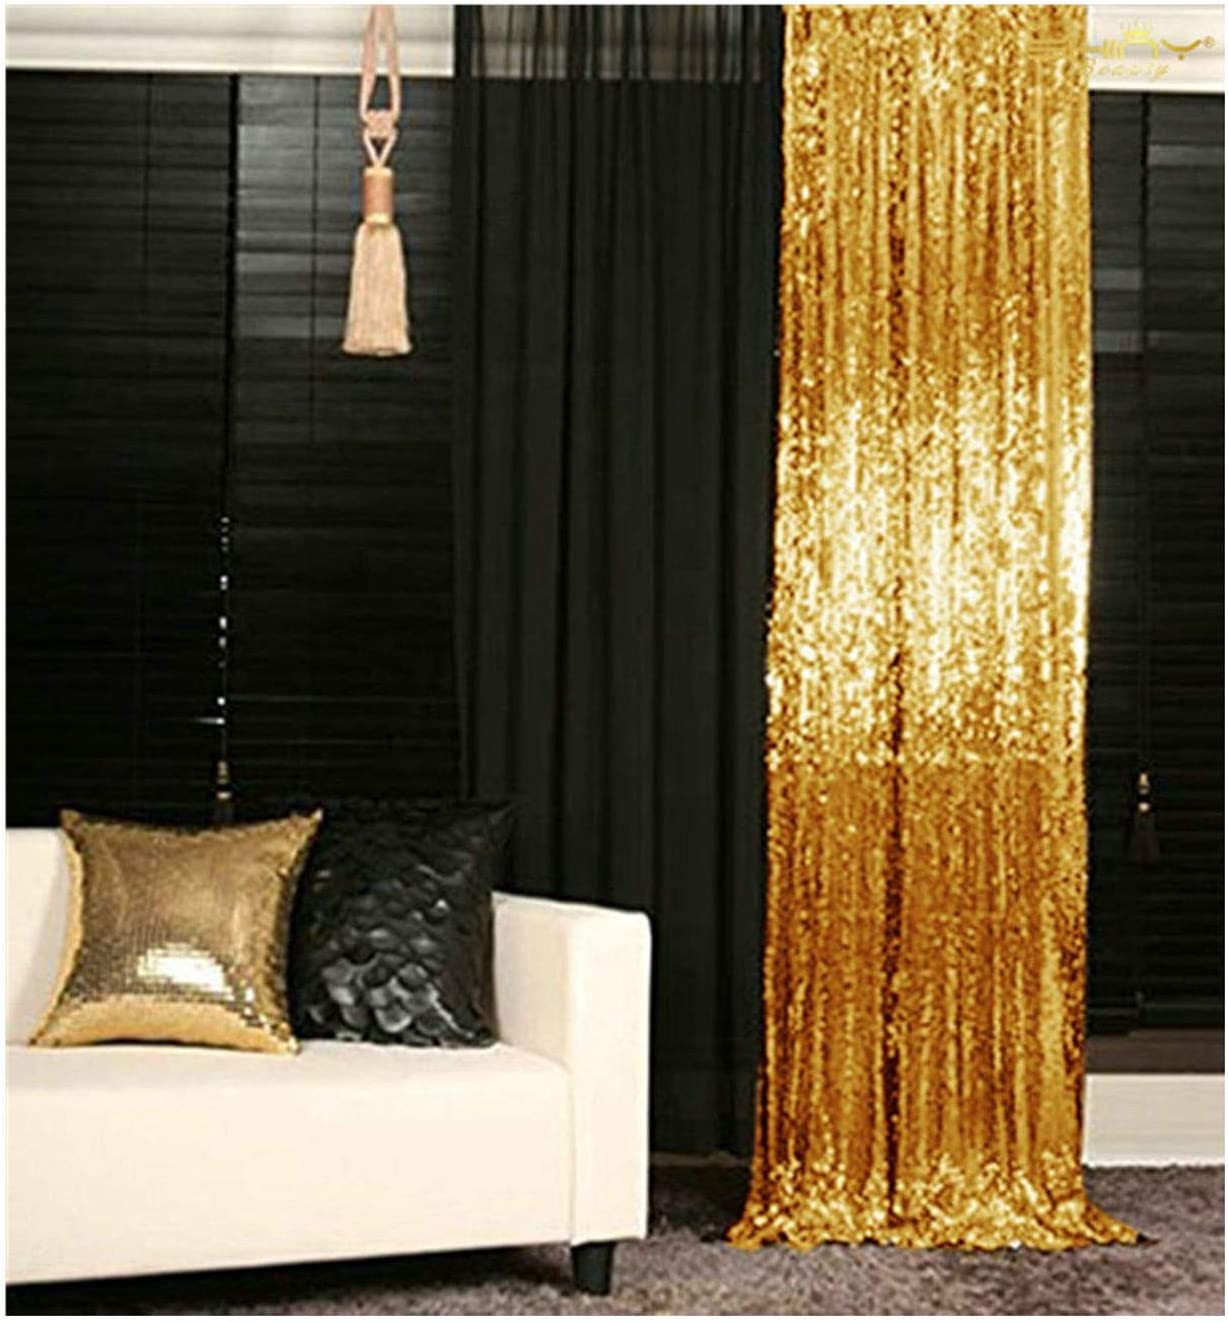 Gold Sequin Curtains Sequin Backdrop 4×8 Feet Sheer Curtans Panels Wedding Photo Backdrop Sequin Backdrop Curtains for Parties 4FTx8FT, Gold